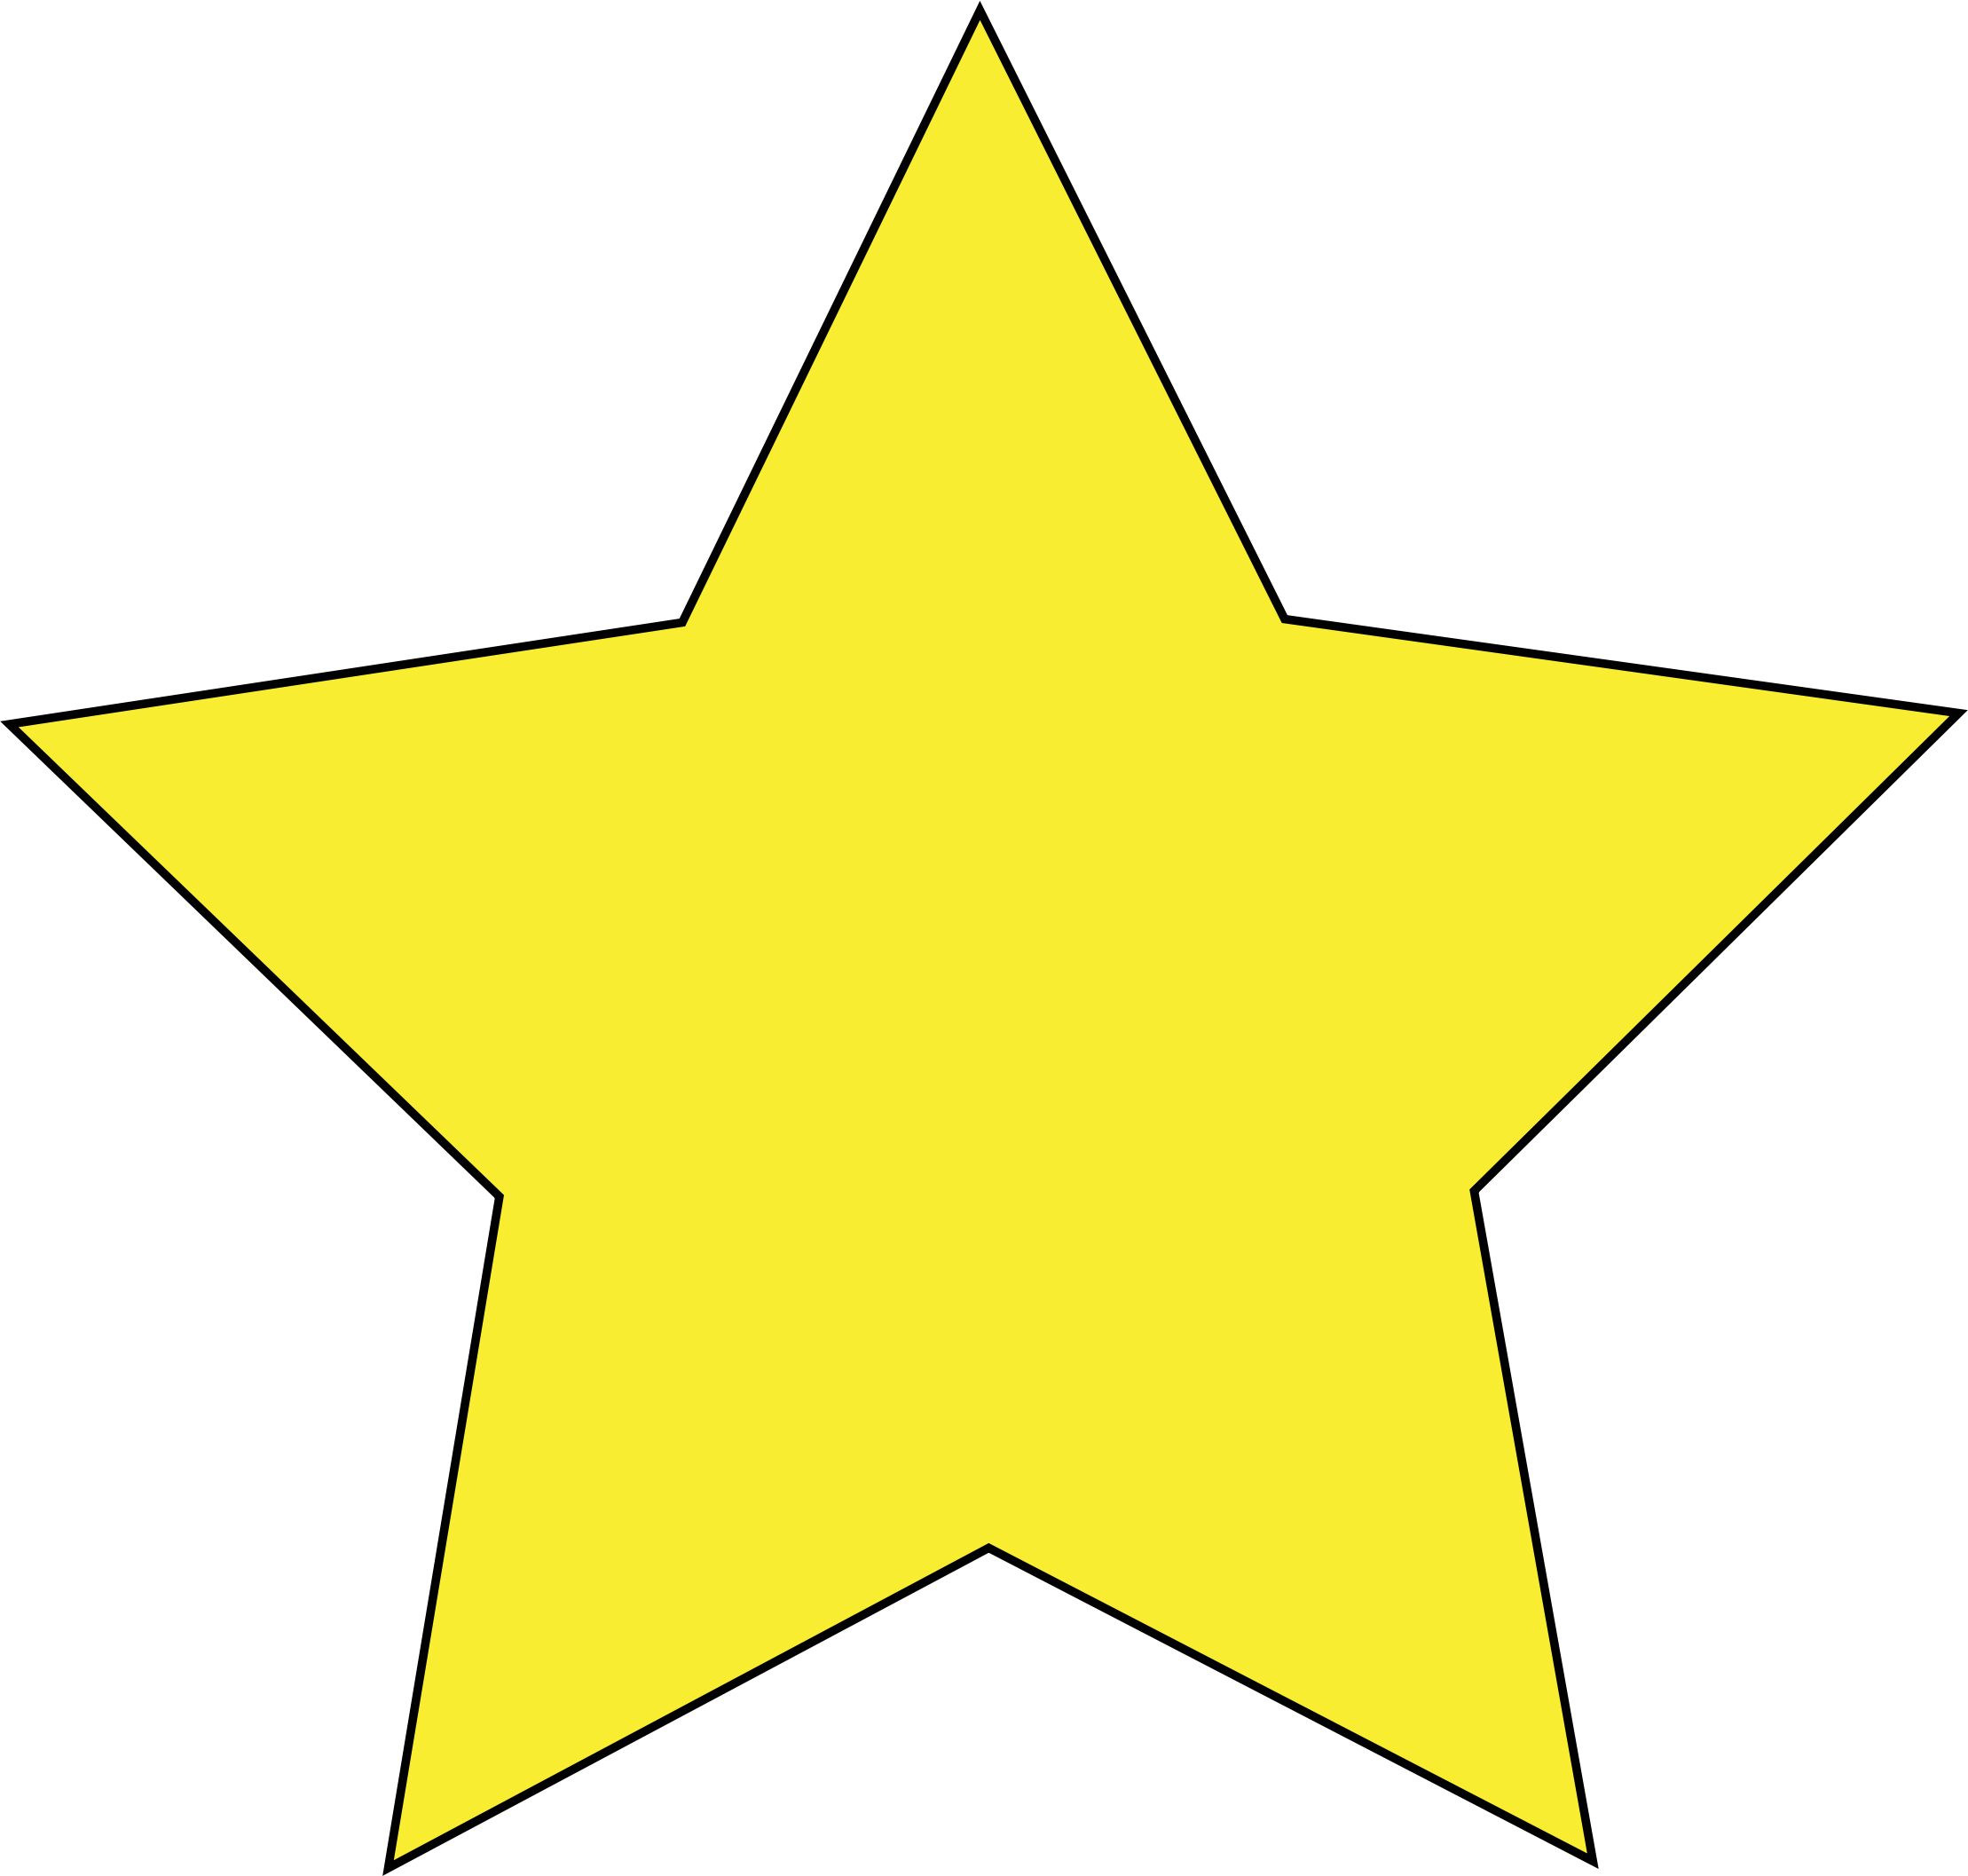 Free Simple Star Cliparts, Download Free Clip Art, Free Clip.